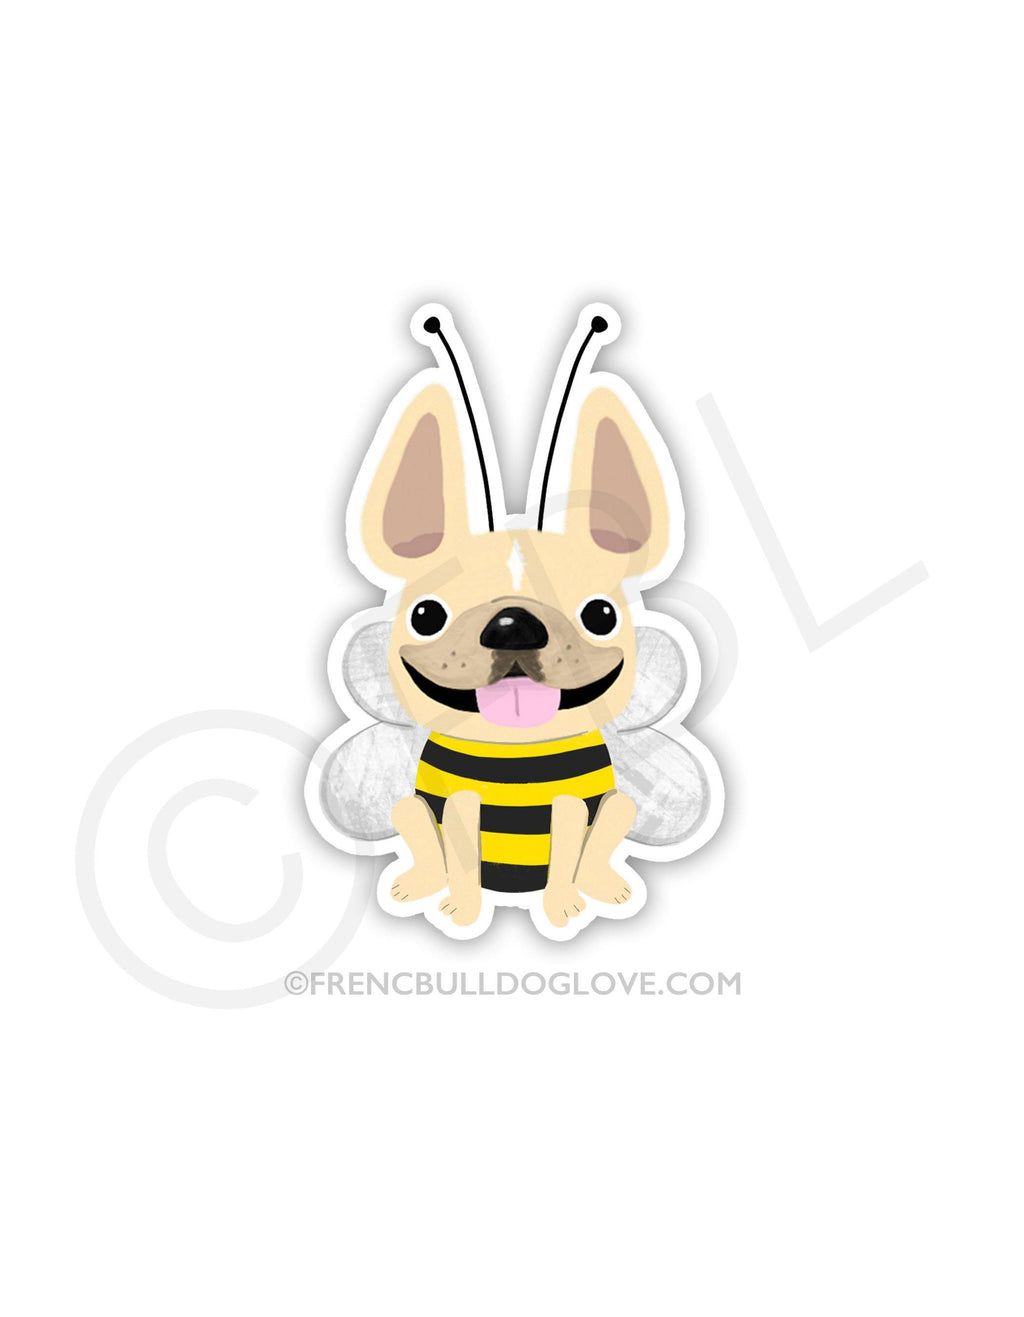 #100DAYPROJECT 46/100 - BUMBLE BEE VINYL FRENCH BULLDOG STICKER